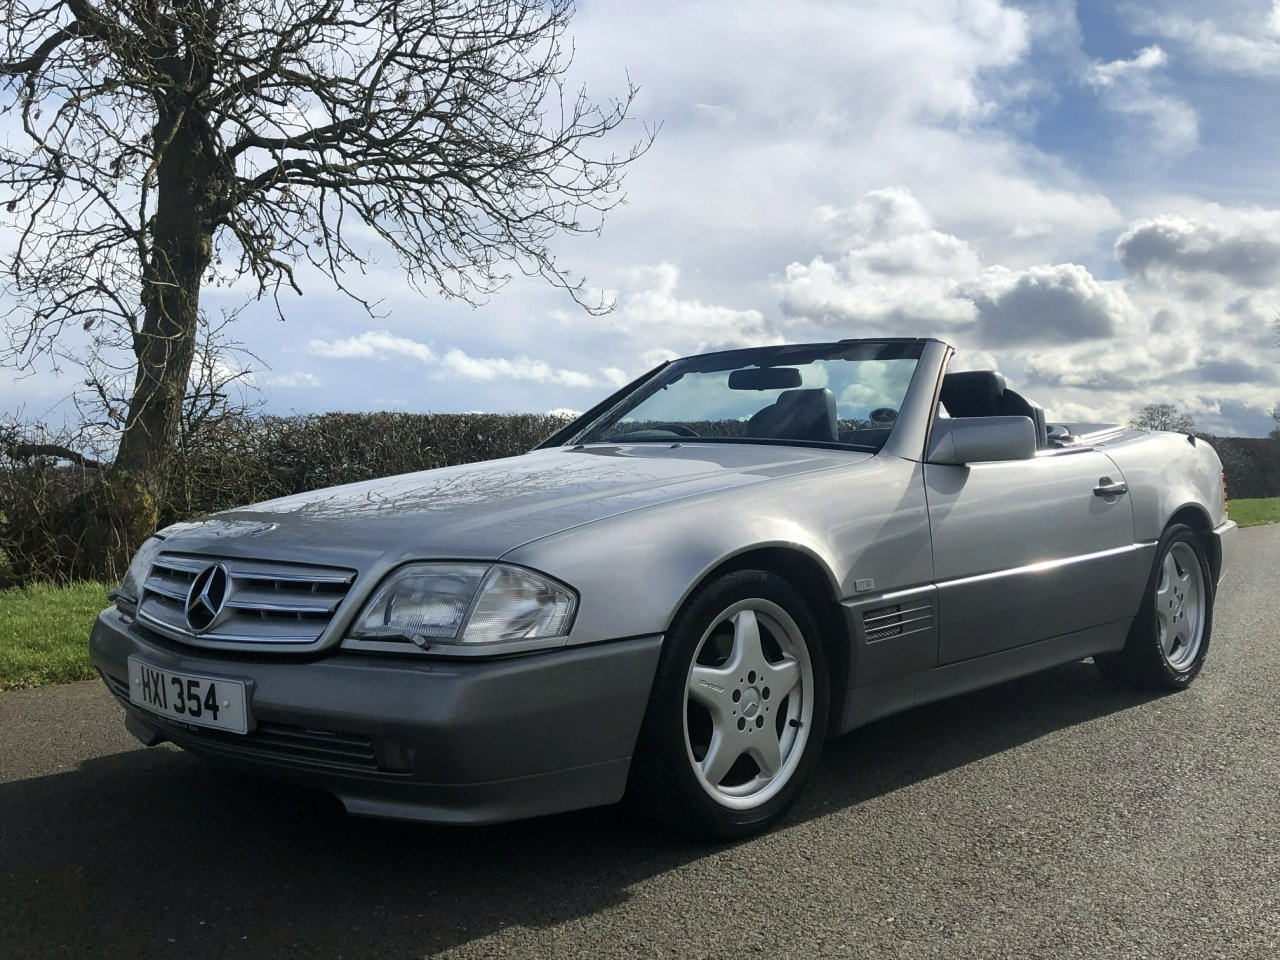 1990 Mercedes Benz 300 SL-24V R129 Automatic For Sale (picture 1 of 6)